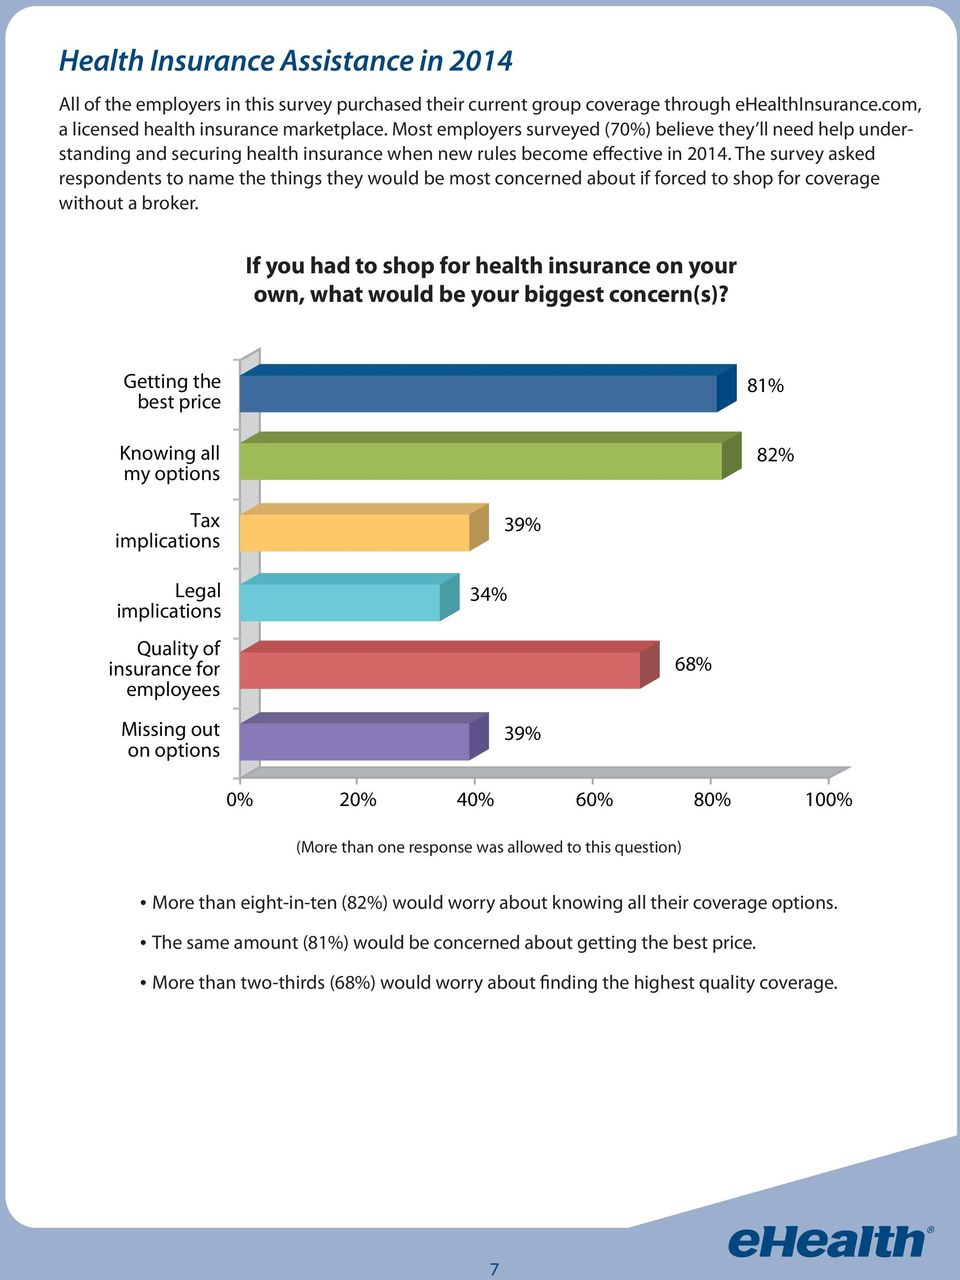 The survey asked respondents to name the things they would be most concerned about if forced to shop for coverage without a broker.